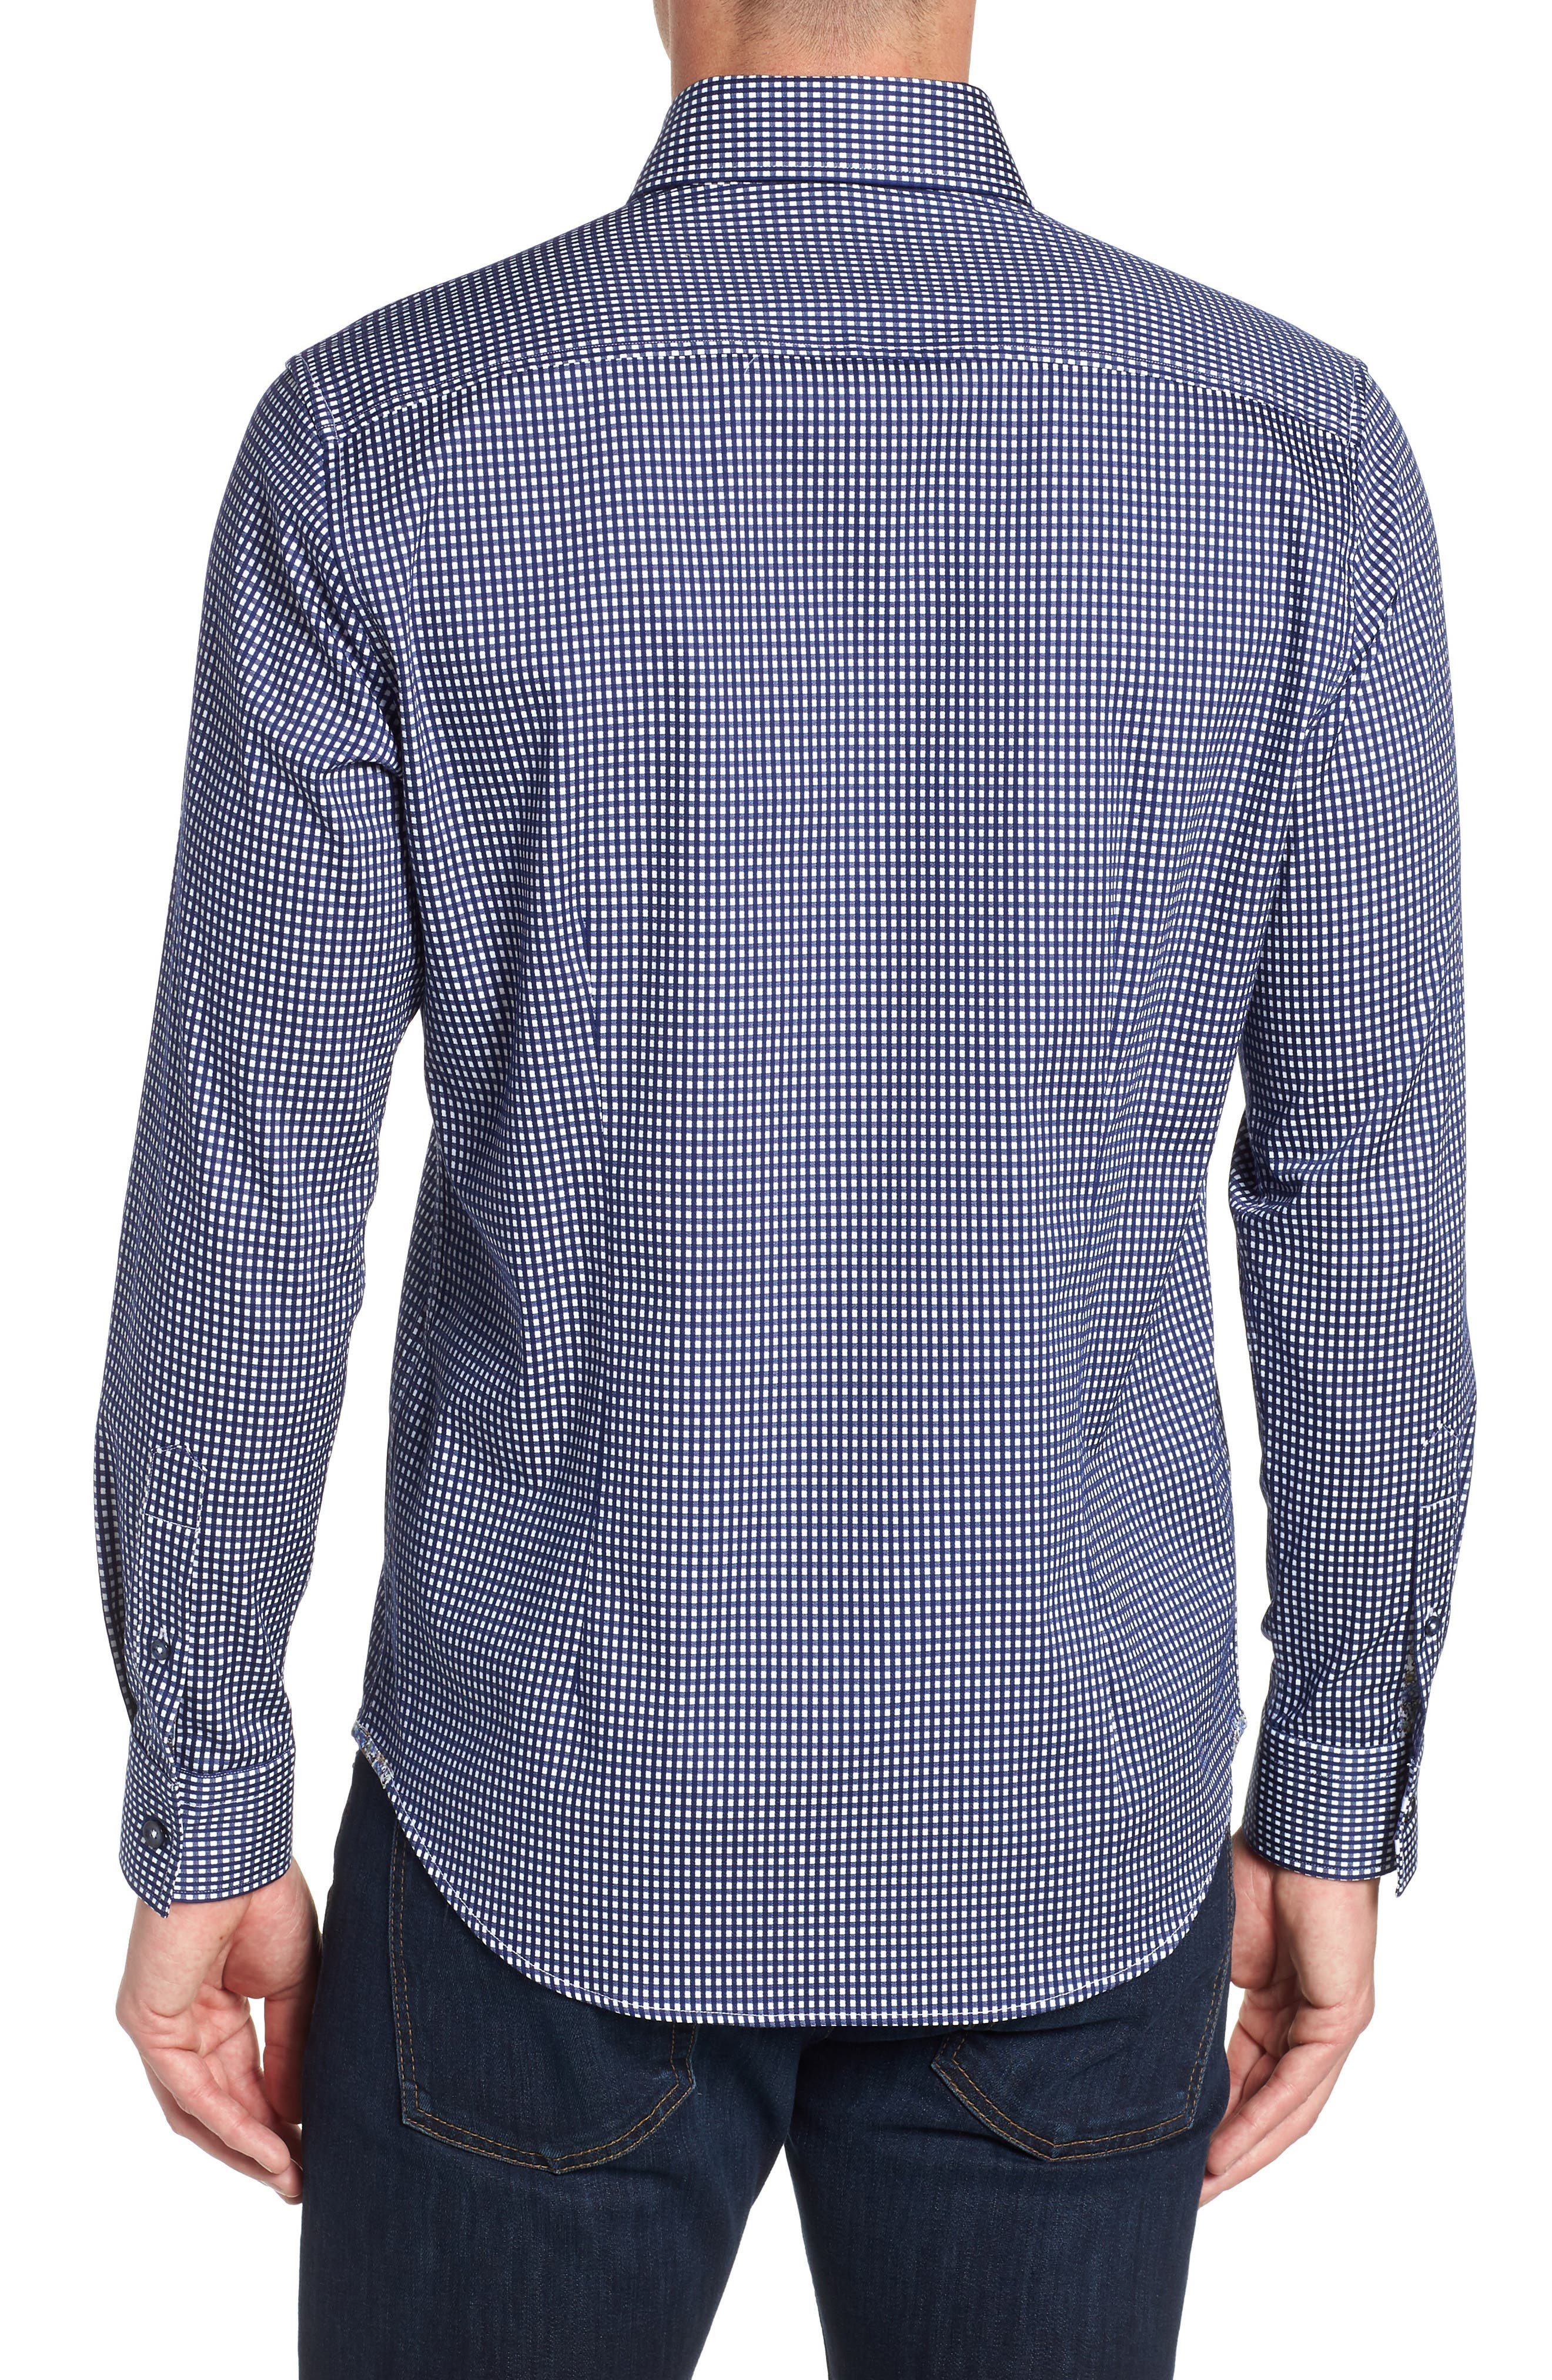 Charles Tailored Fit Sport Shirt,                             Alternate thumbnail 3, color,                             BLUE